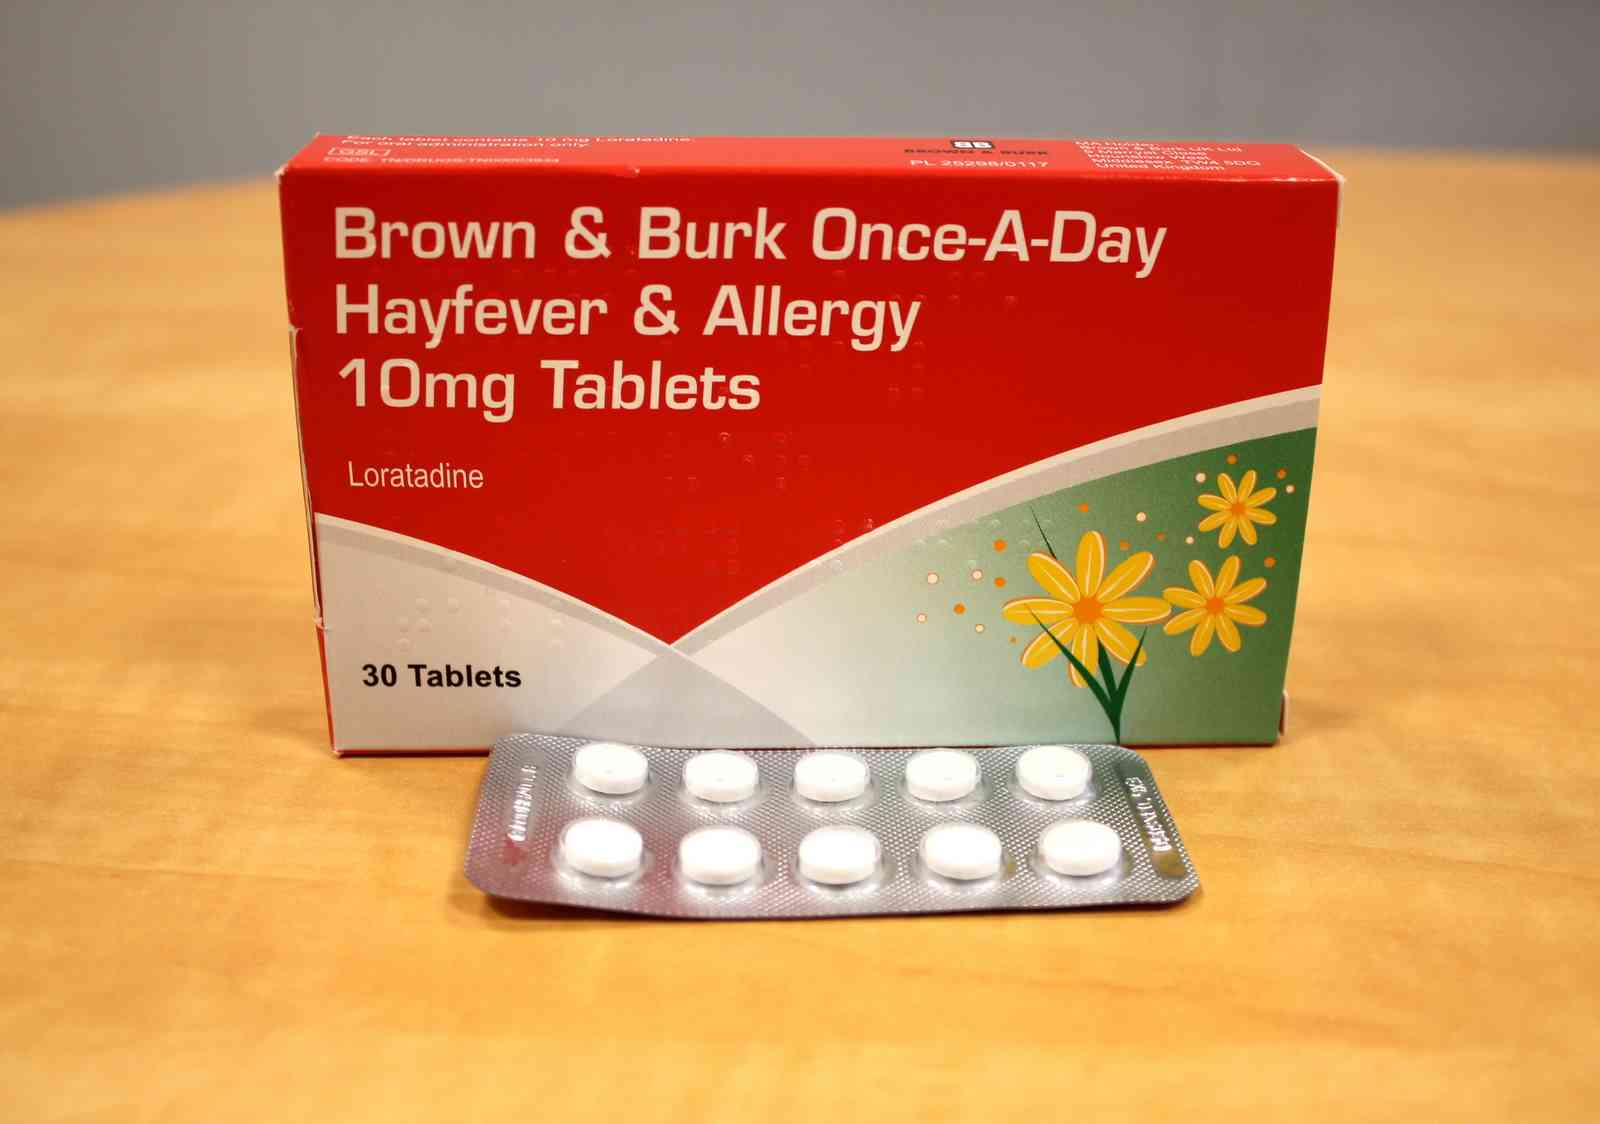 Brown & Burk - Once -A-Day Hayfever & Allergy 10 mg Tablets 30 Tablets